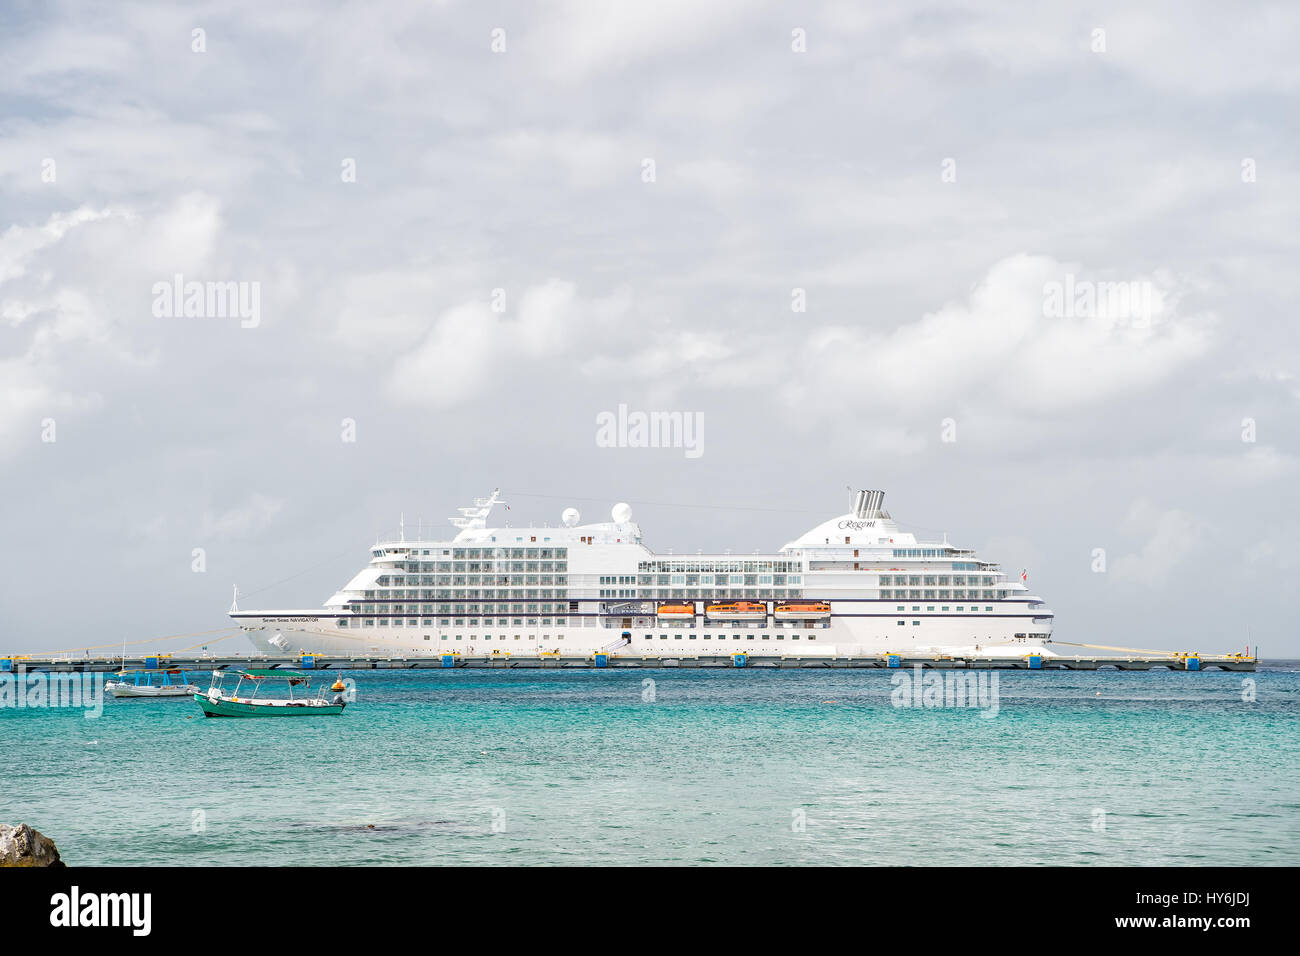 Cozumel, Mexico - December 24, 2015: large cruise ship or liner in bay or harbor, touristic passenger boat on water - Stock Image